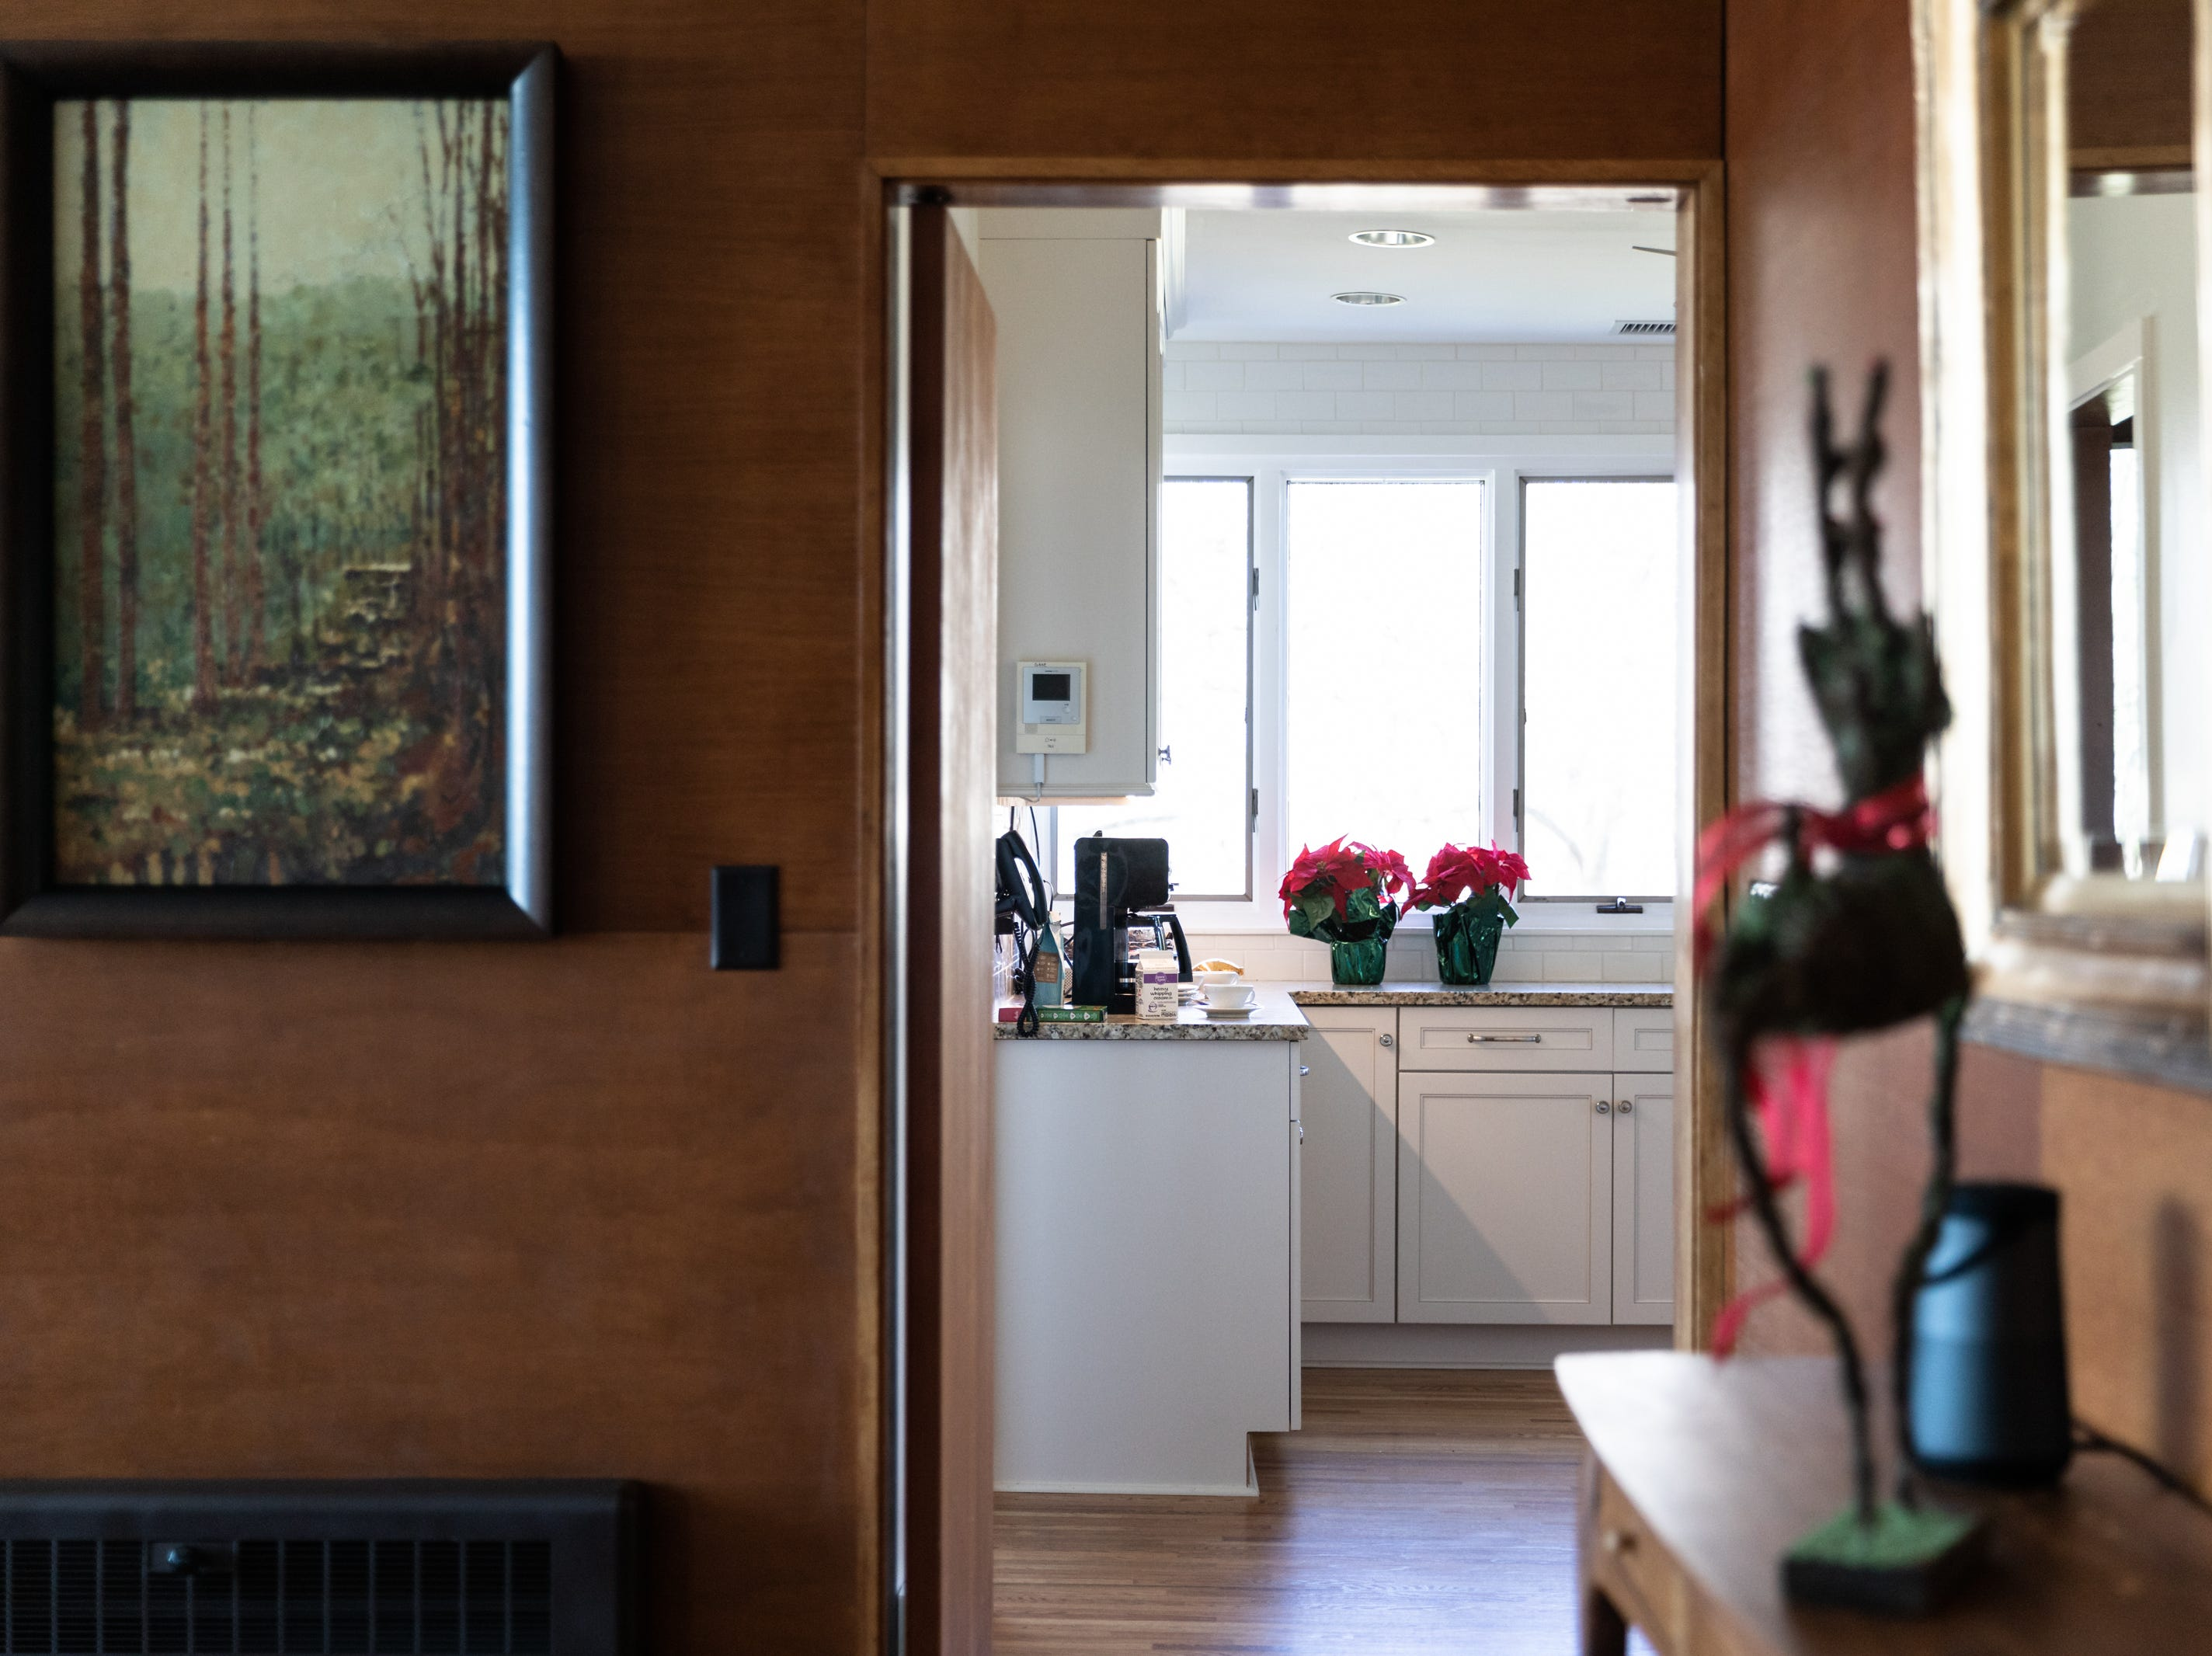 Poinsettias adorn a countertop in the kitchen of the Governor's Western Residence on Patton Mountain Road in Asheville.